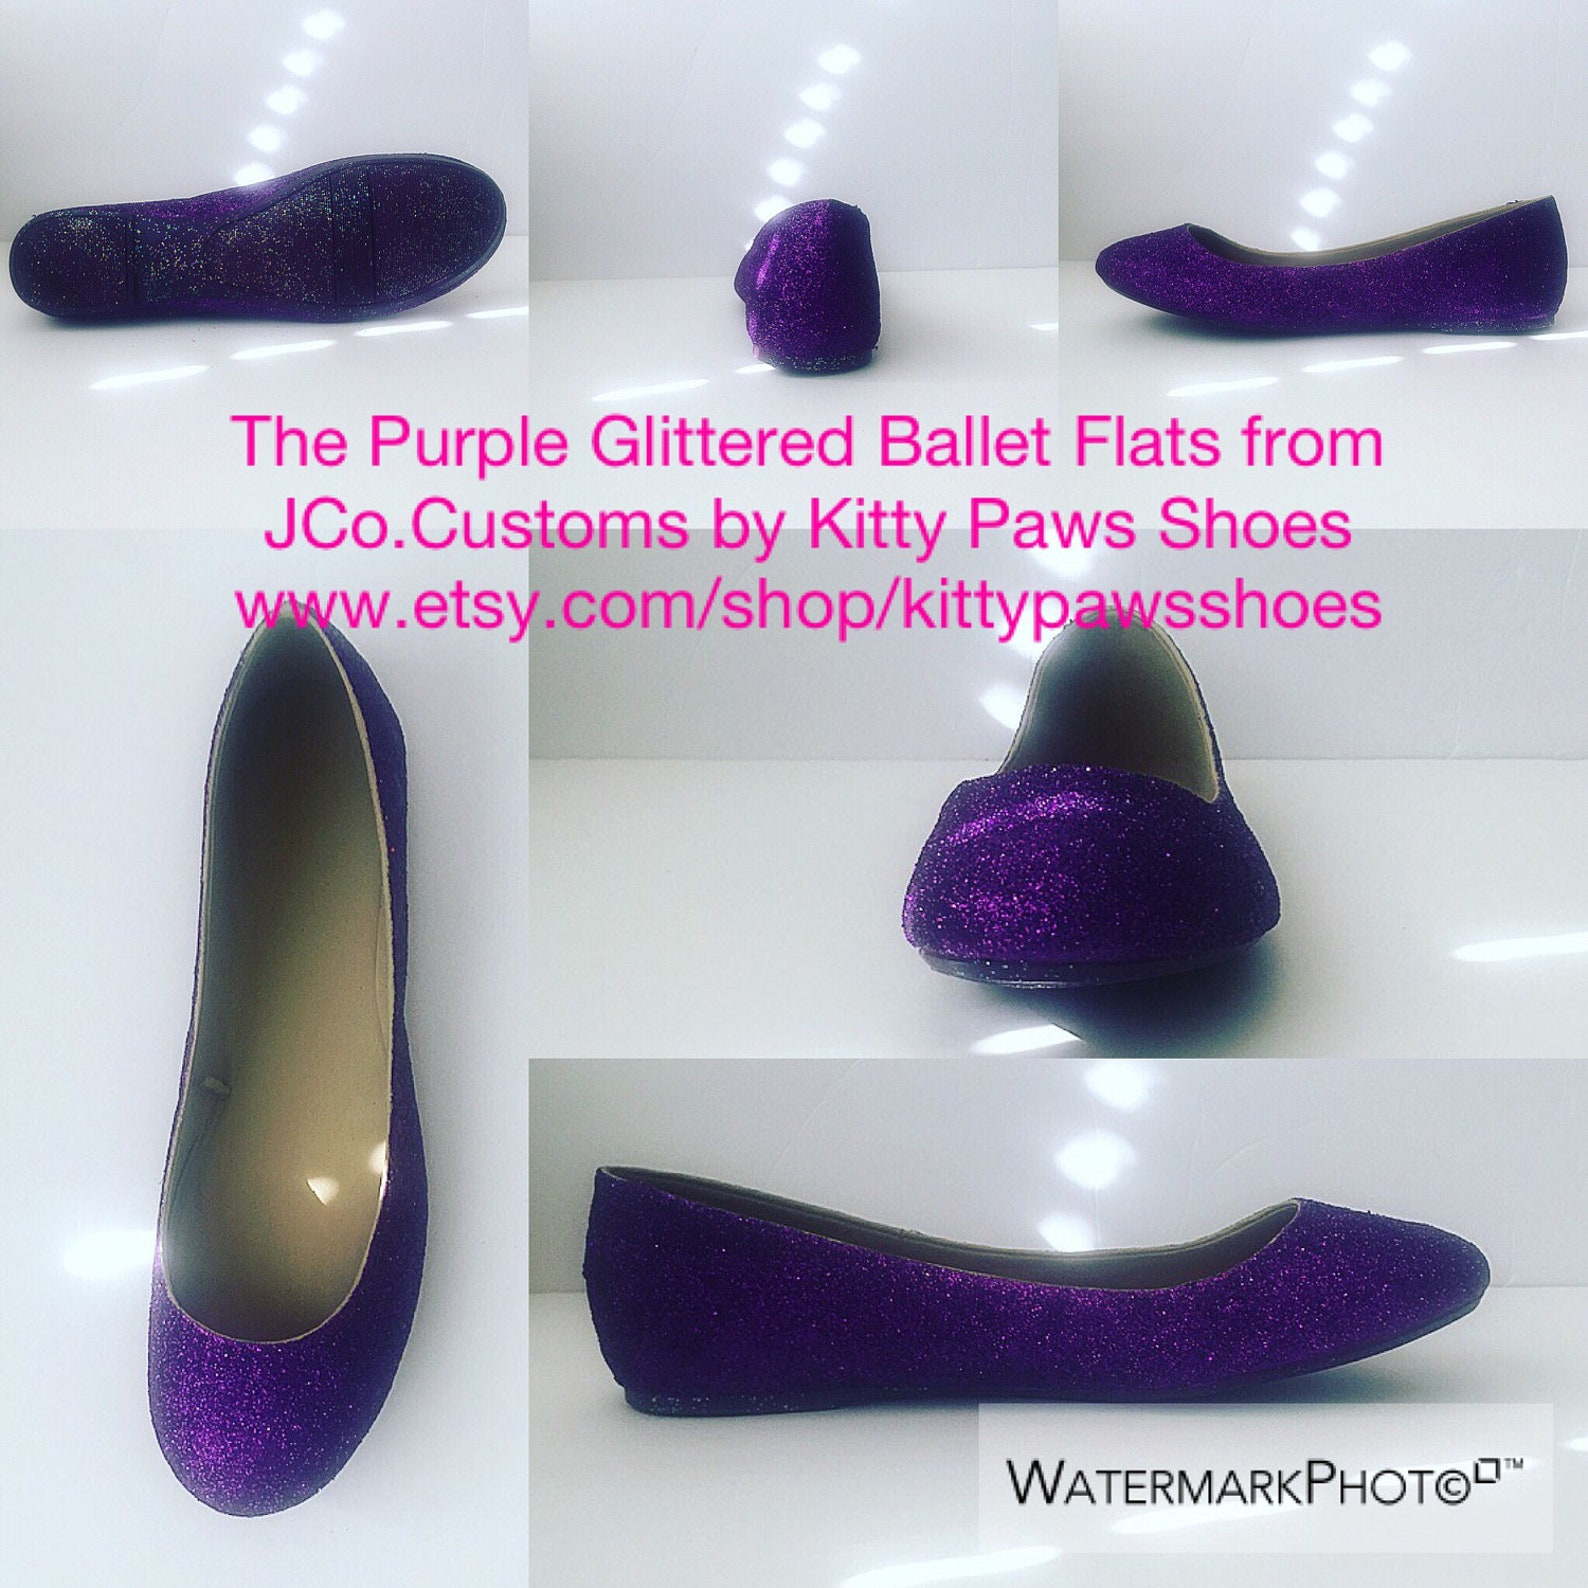 purple shoes women's dark plum purple glittered ballet flats w/purple shimmery bottoms *free u.s. shipping* jco.customs by k